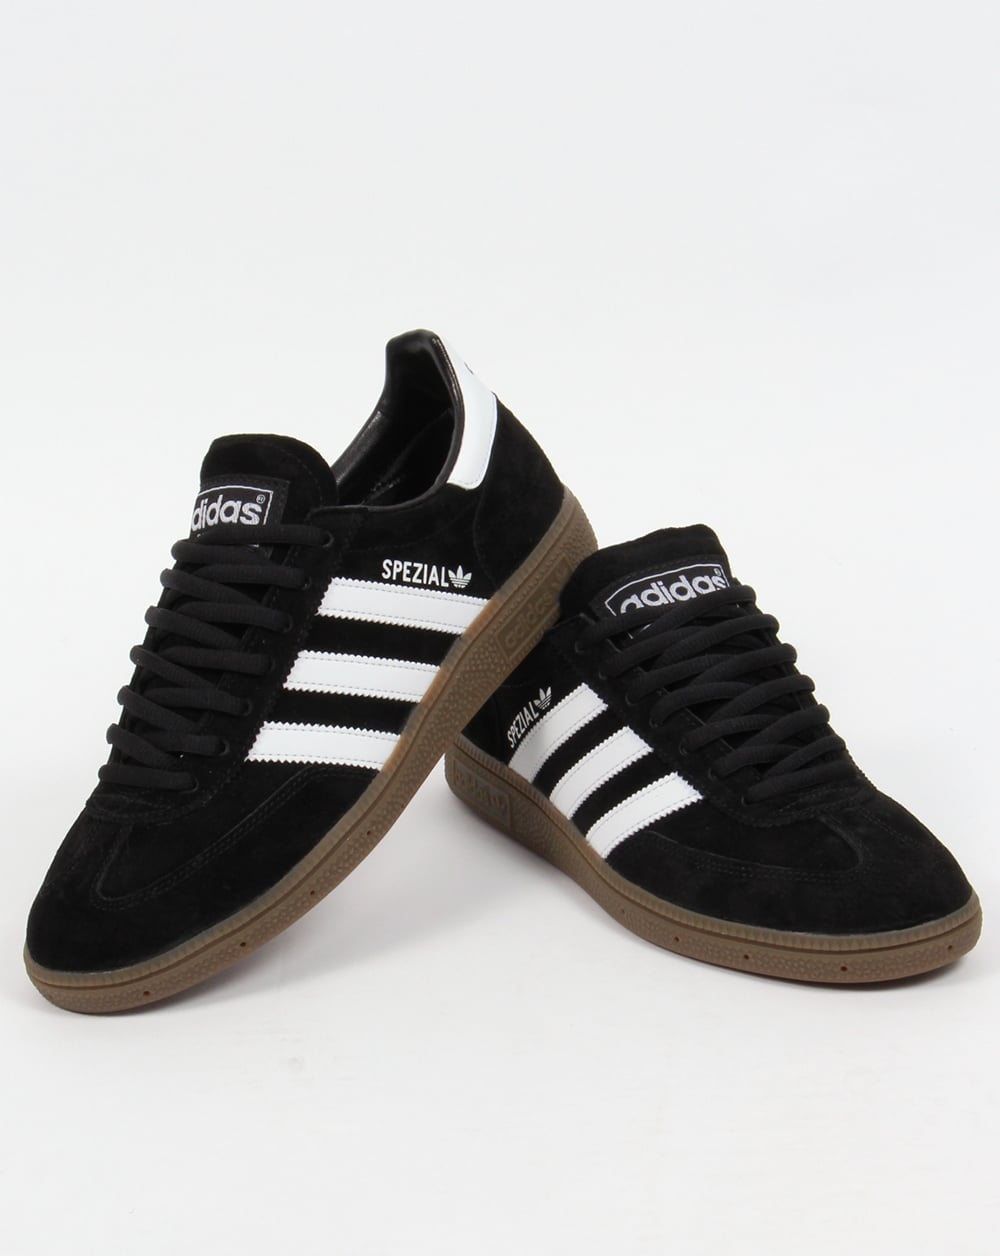 Mens Adidas Vintage Shoes